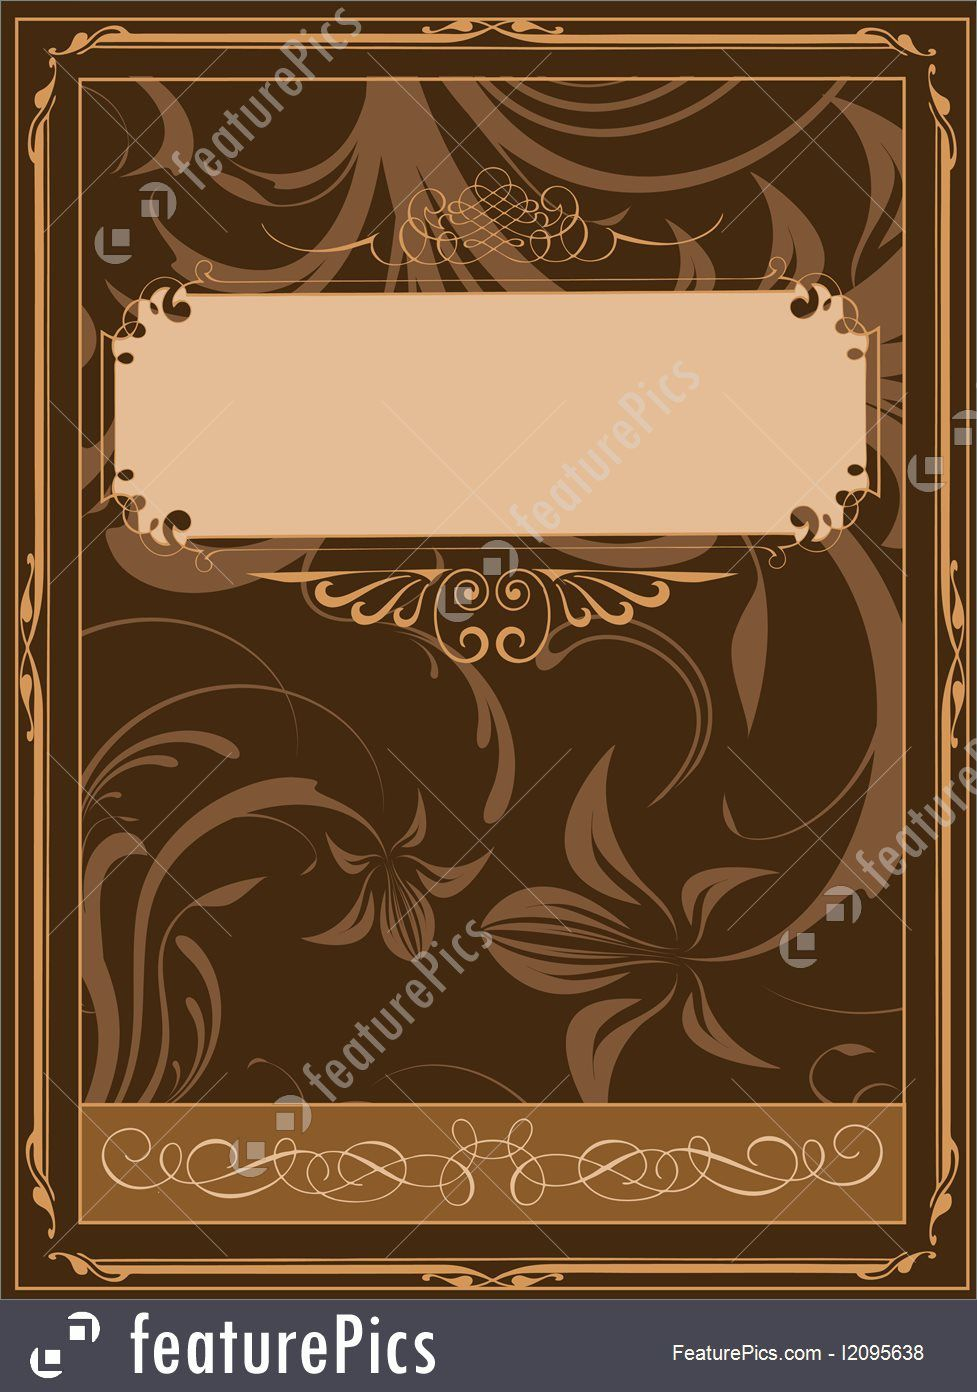 009 Wonderful Old Book Cover Template Design  Fashioned WordFull